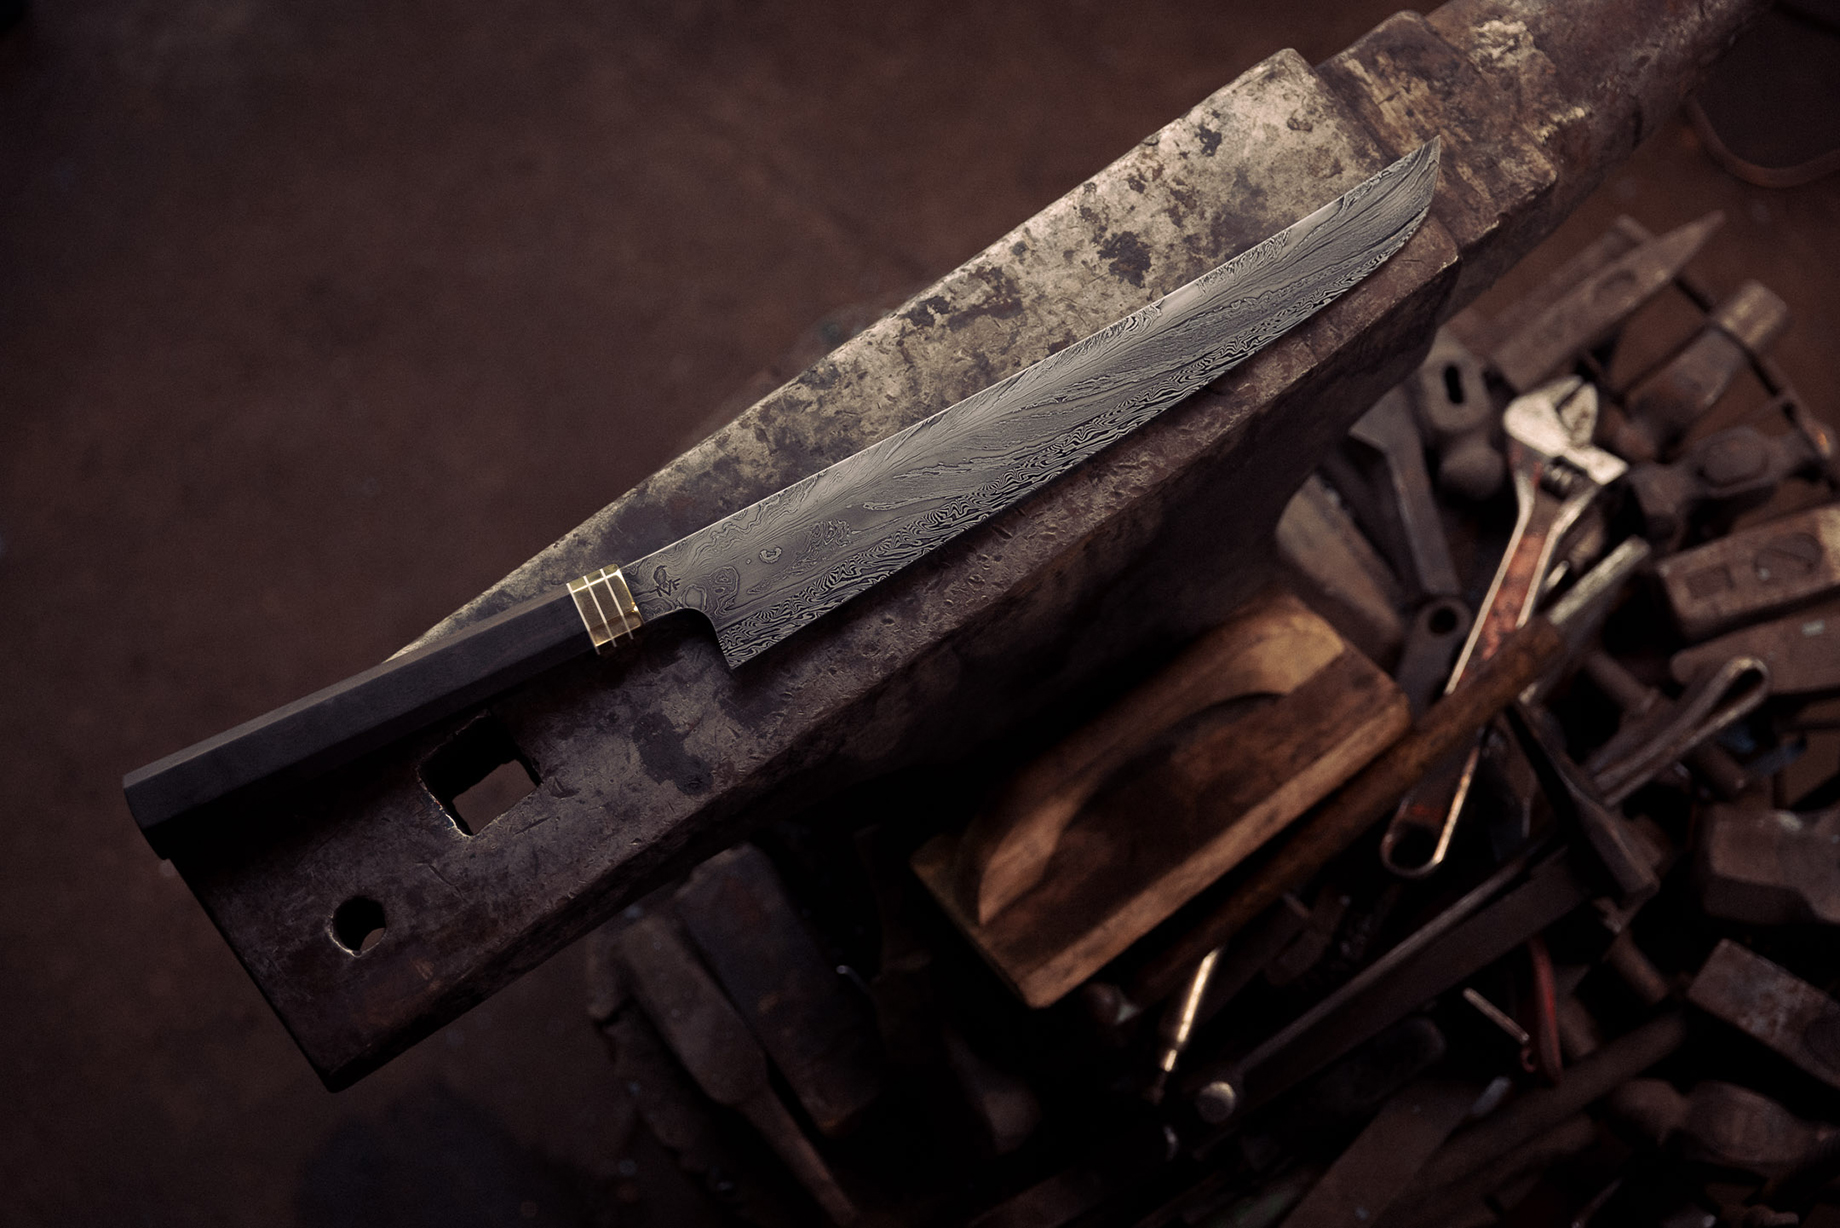 Hand forged knife shot by Christian Tisdale for Makers series